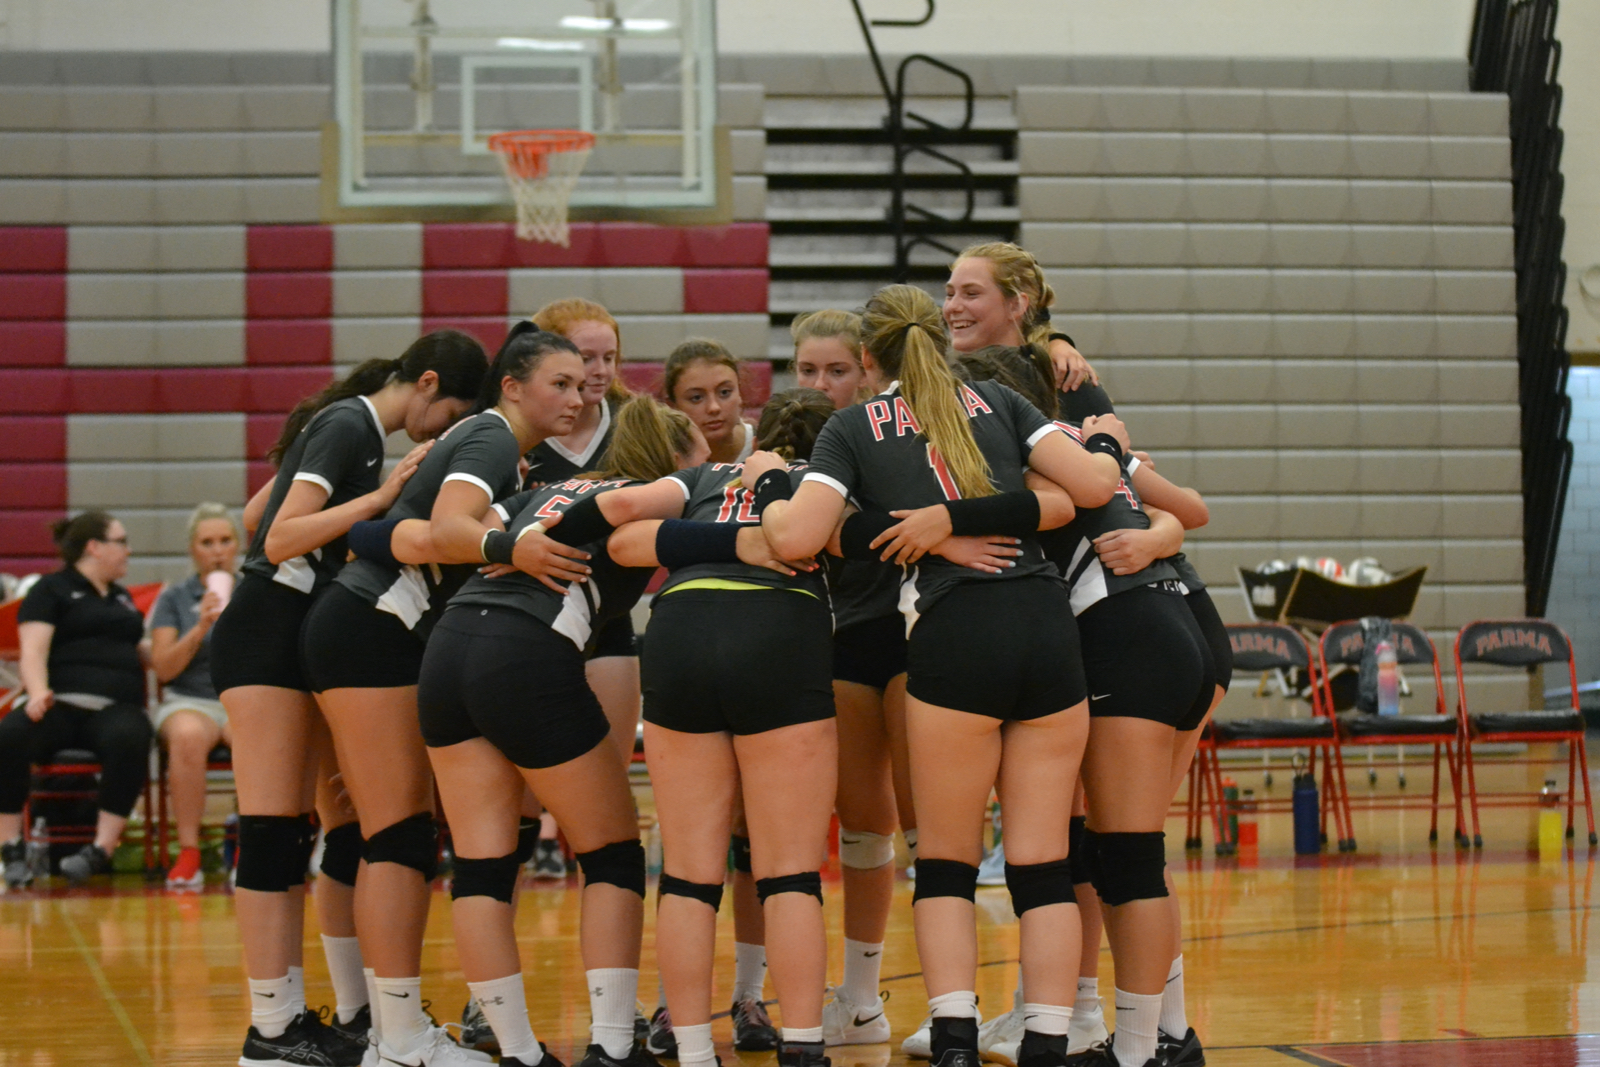 PSH 9th-12th Grade Volleyball Try-Out Information